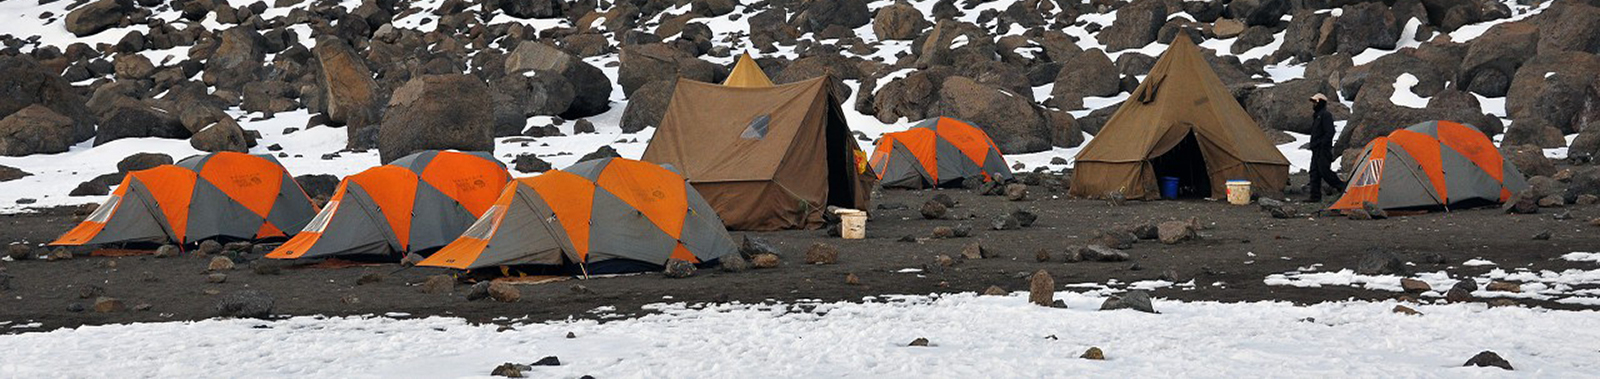 Kilimanjaro Mountain hardware tents